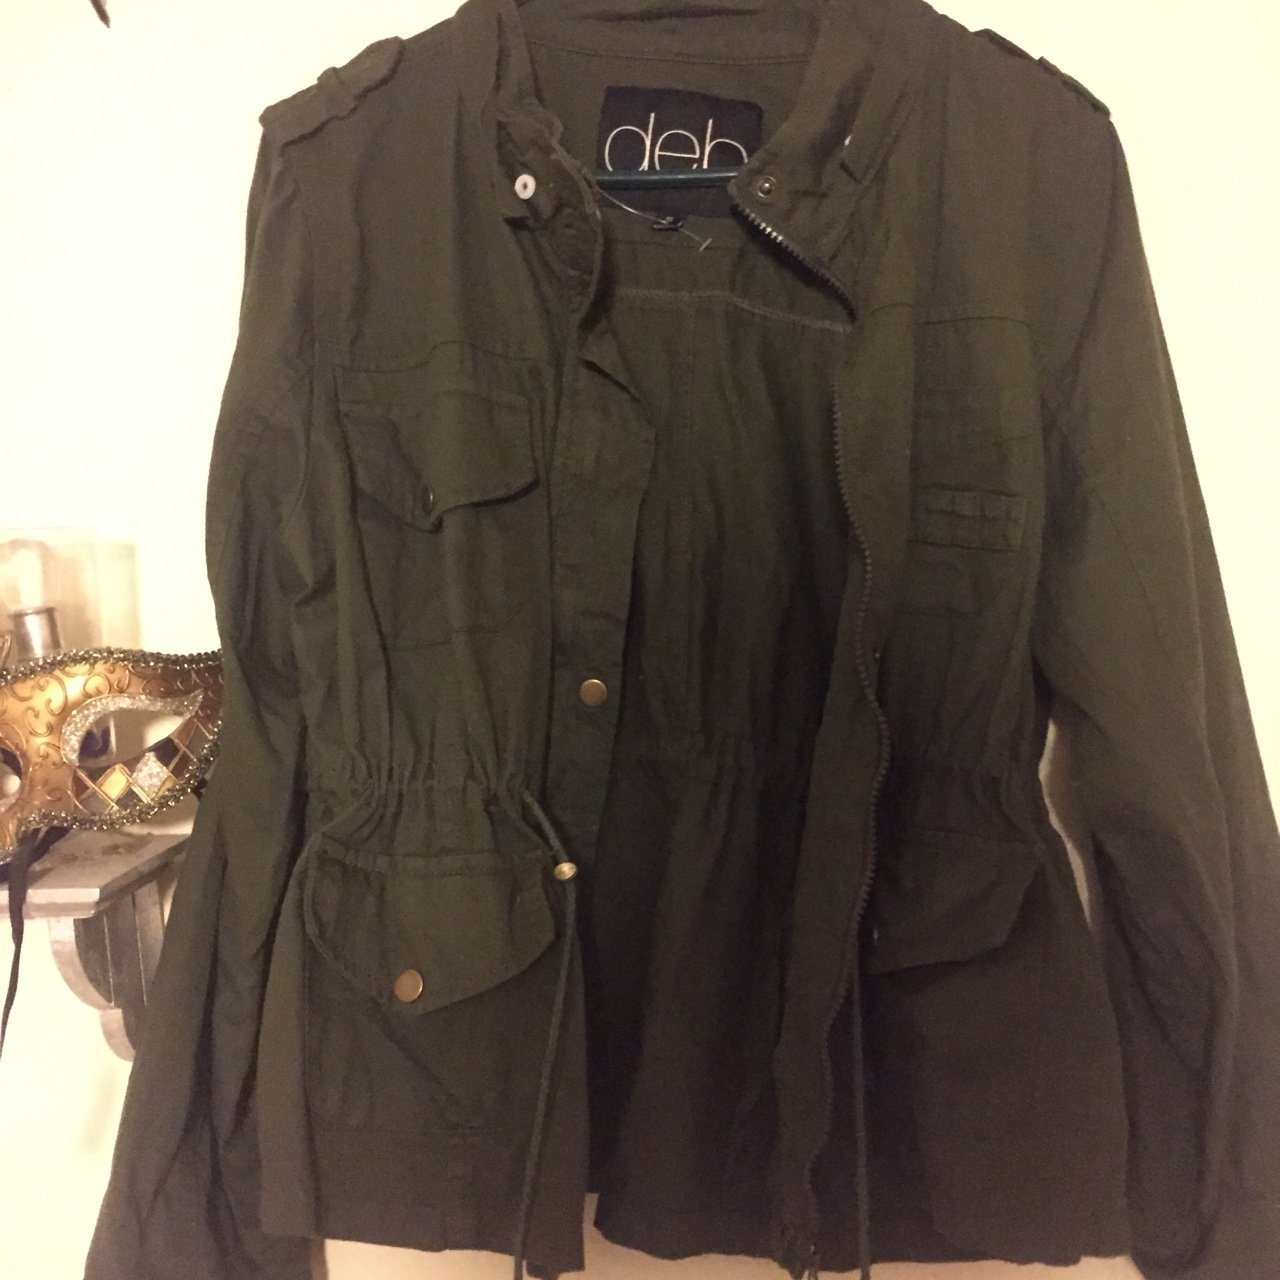 51c8e46251c10 Deb hunter green jacket. Says 1x but fits like a large - Depop